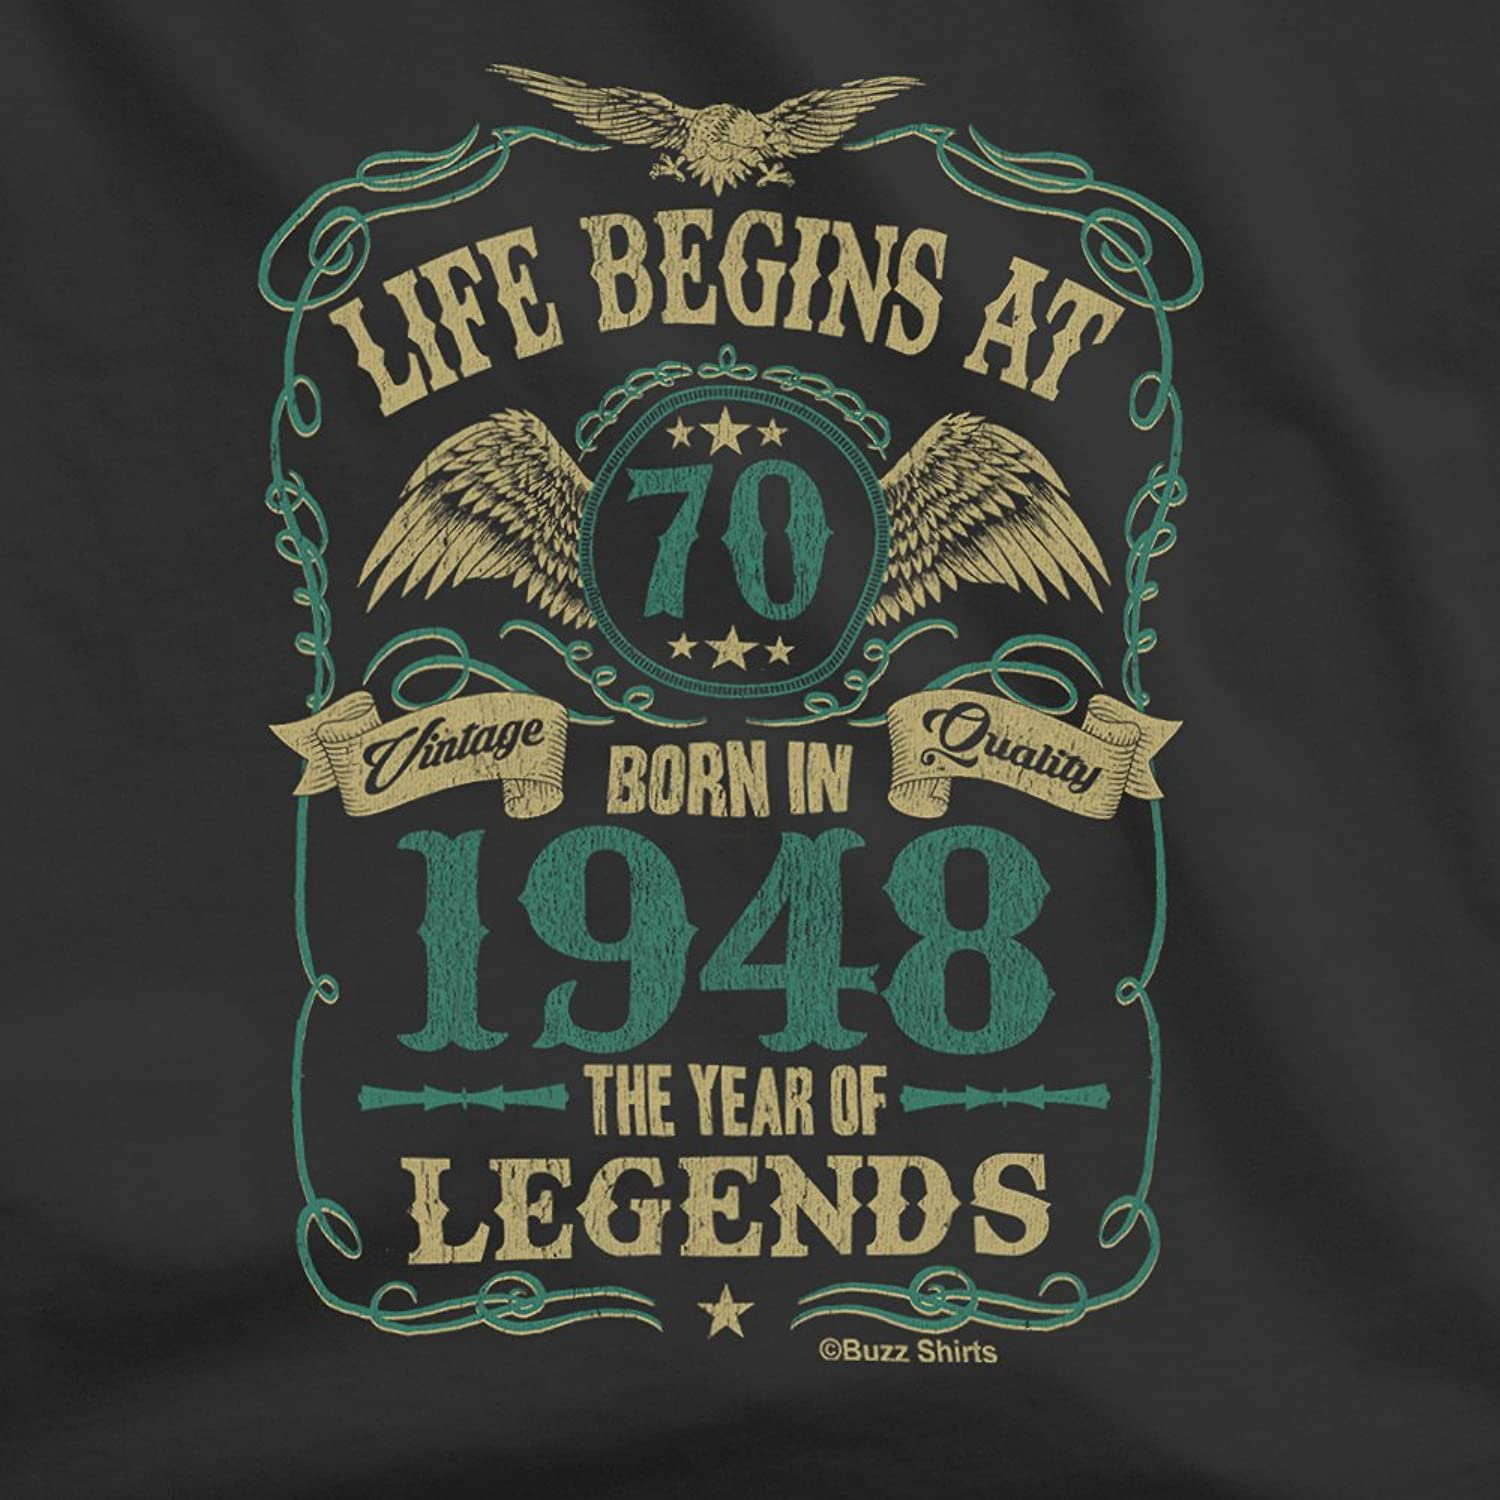 Life Begins At 70 Hombres Camiseta - BORN In 1948 Year of Legends 70th Regalo de cumpleaños Buzz Shirts ®